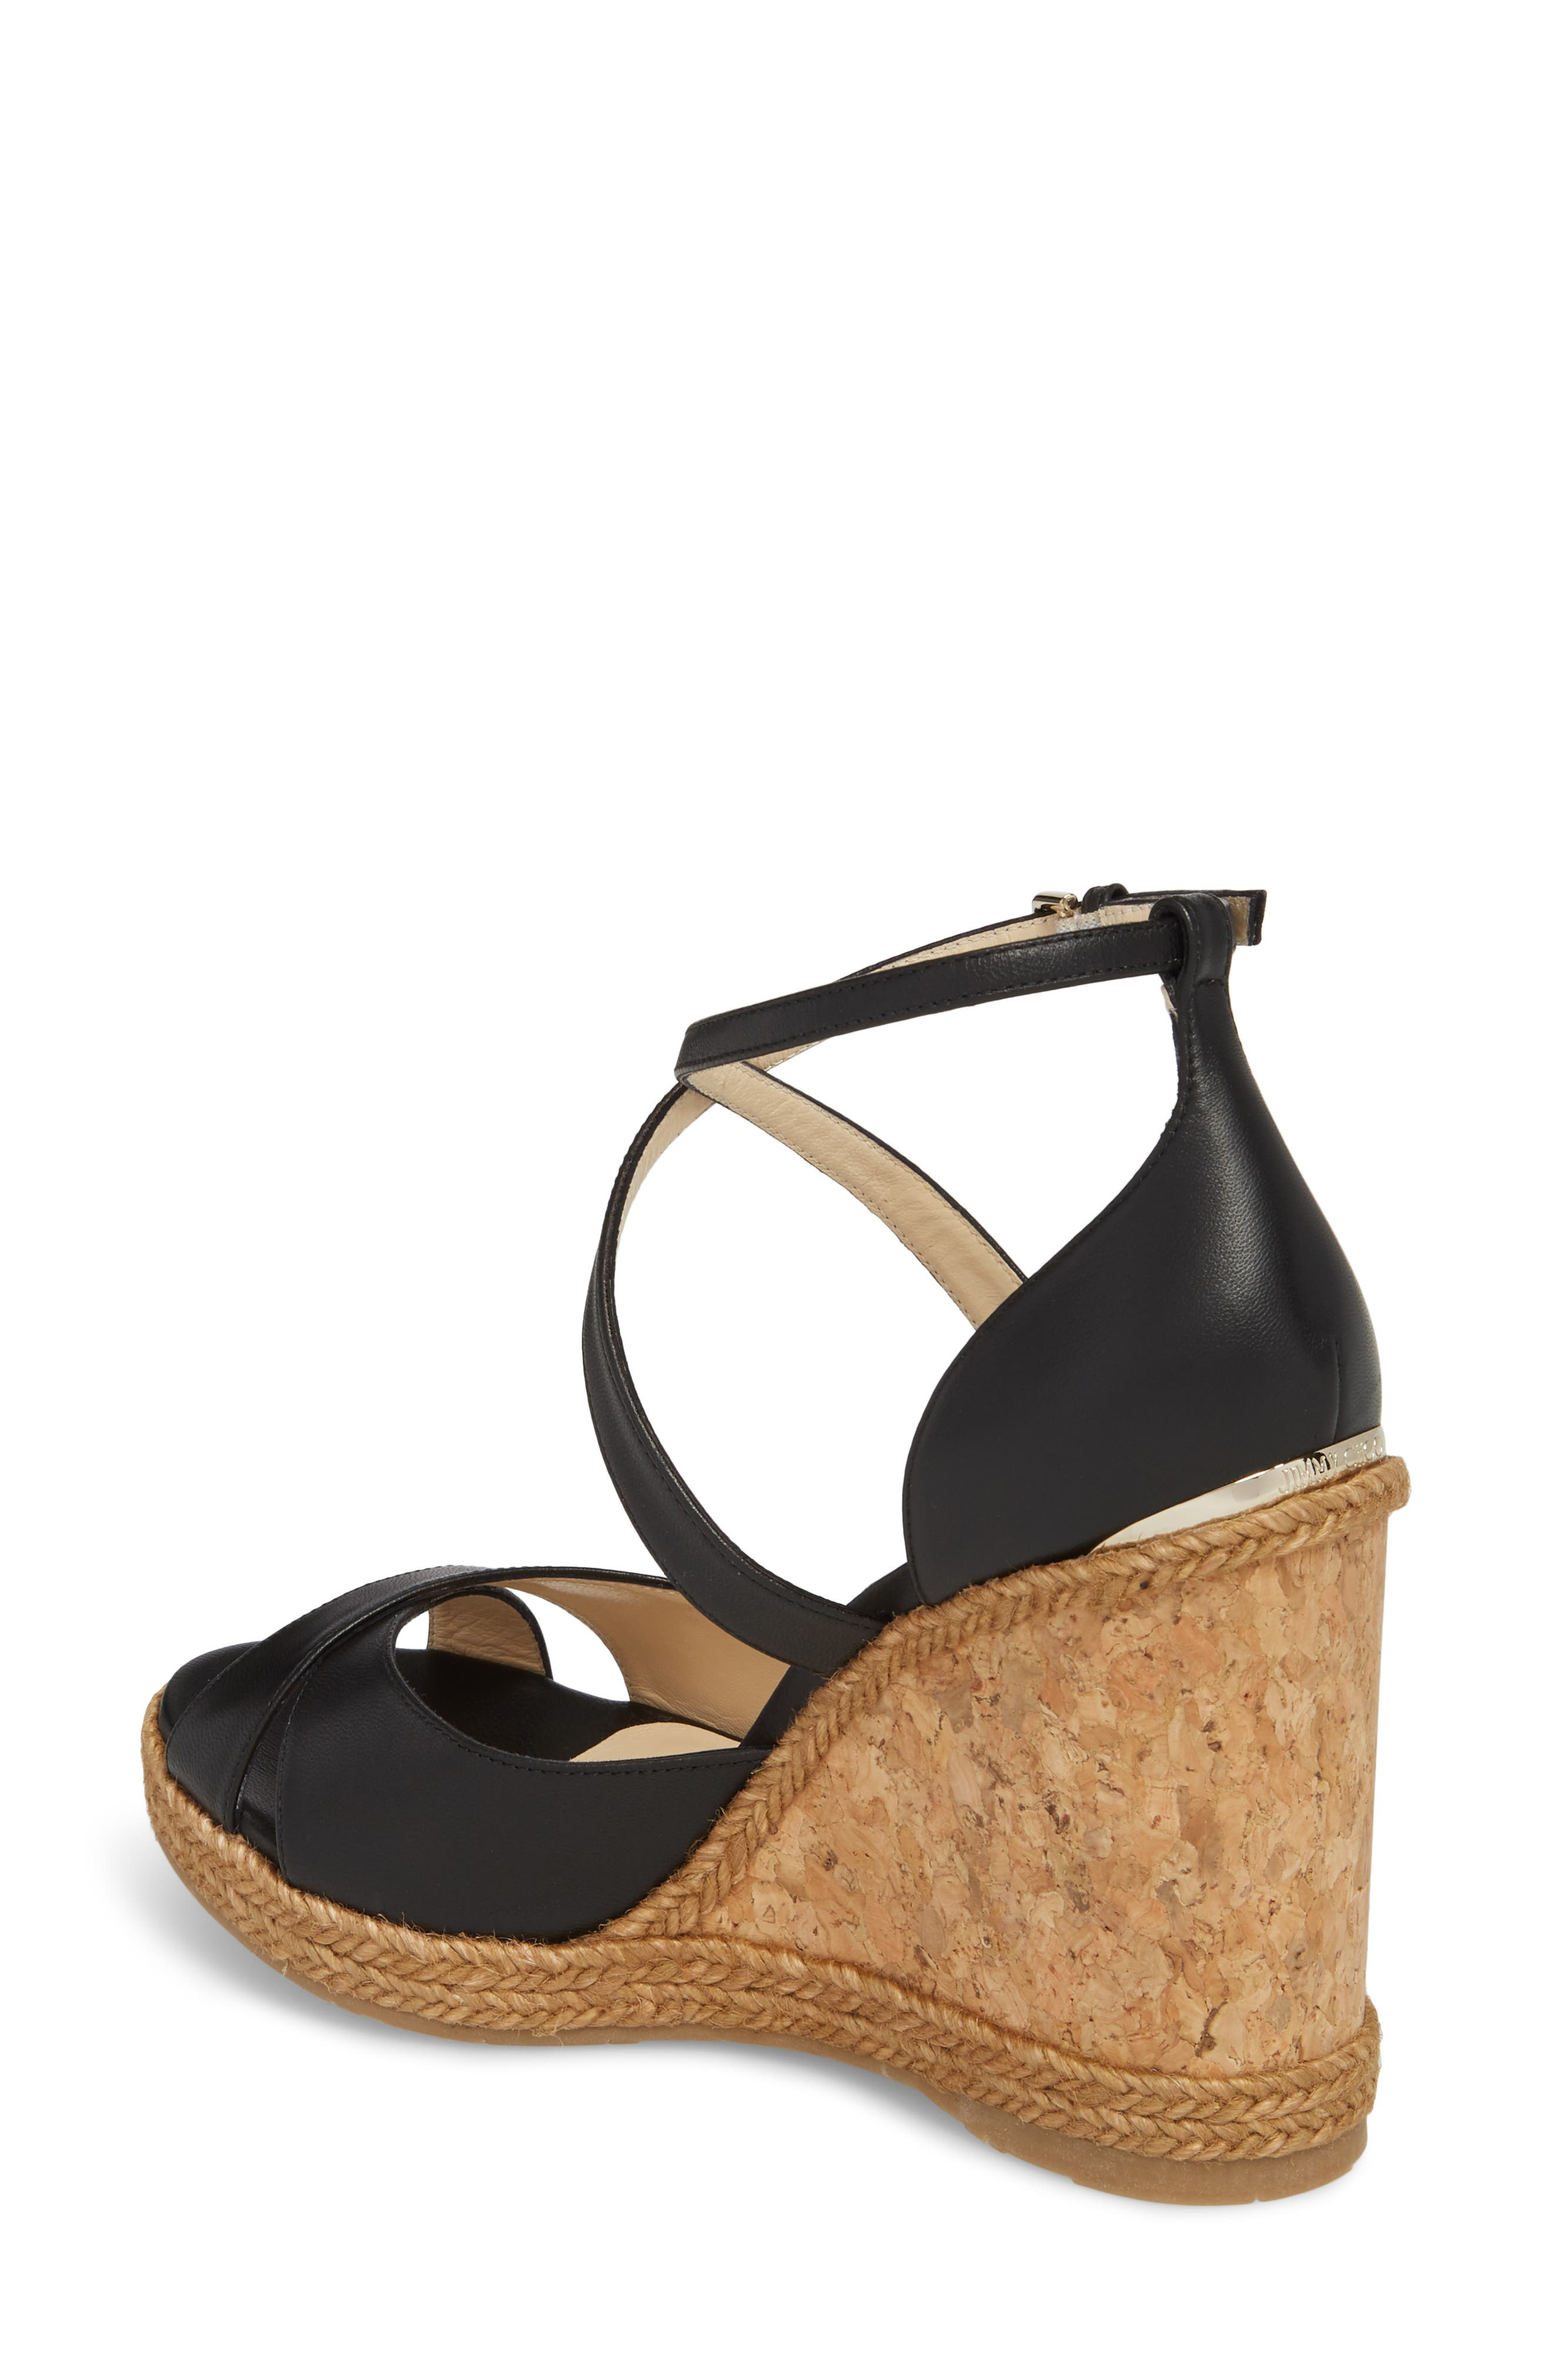 JIMMY CHOO, Alanah Espadrille Wedge Sandal, Alternate thumbnail 2, color, BLACK